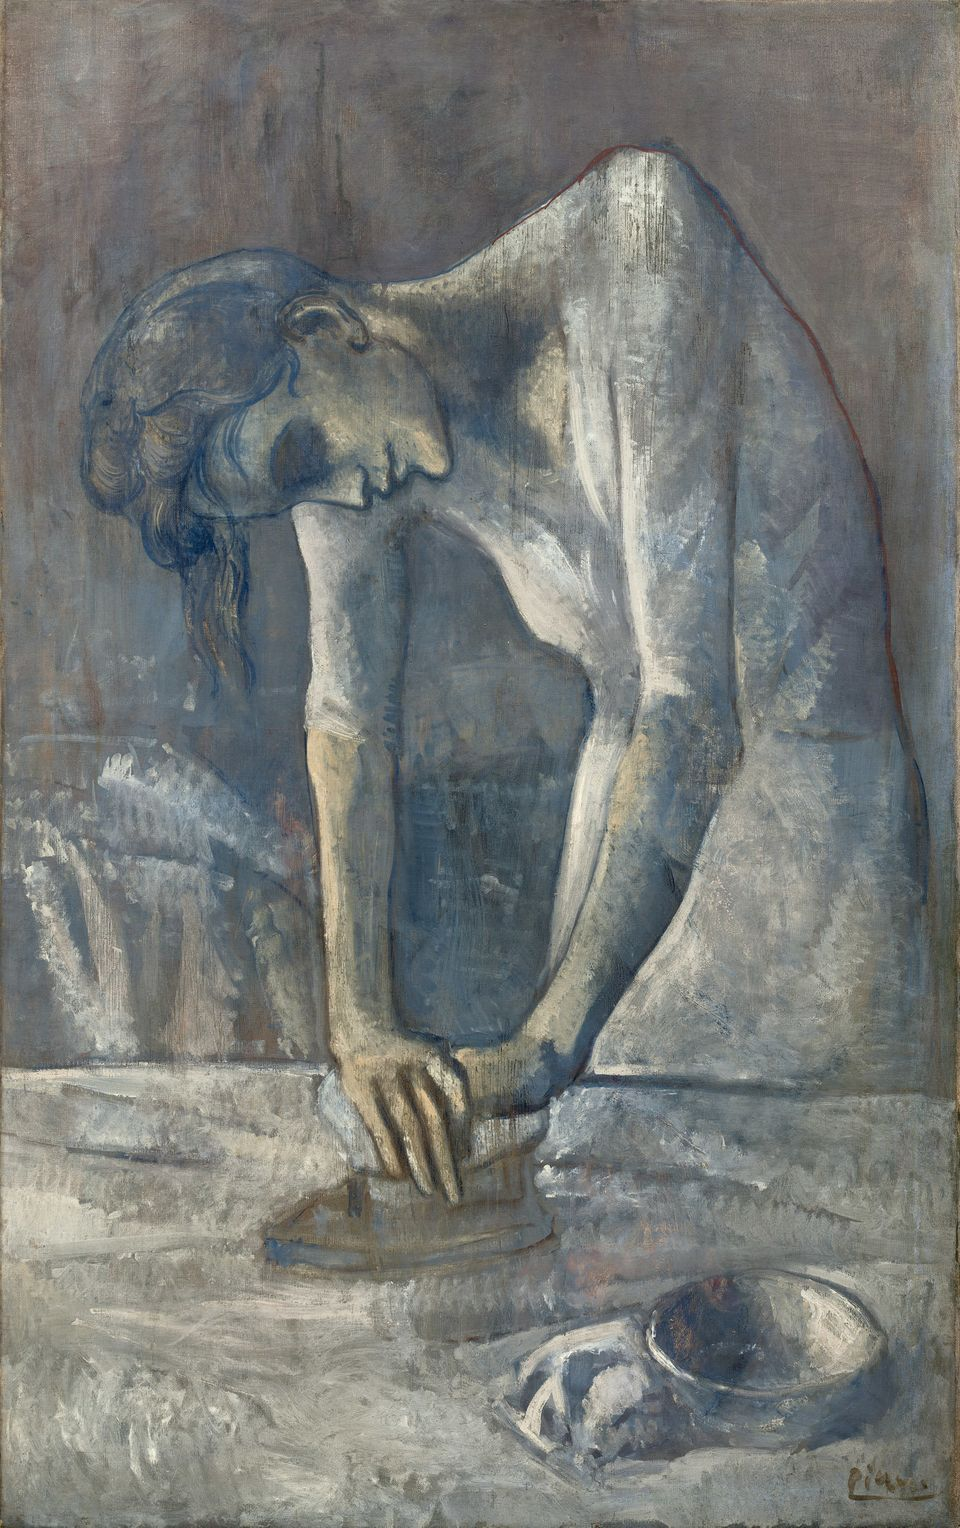 Woman Ironing (La repasseuse) Bateau-Lavoir, Paris, spring 1904 Oil on canvas, 116.2 x 73 cm Solomon R. Guggenheim Museum, Ne